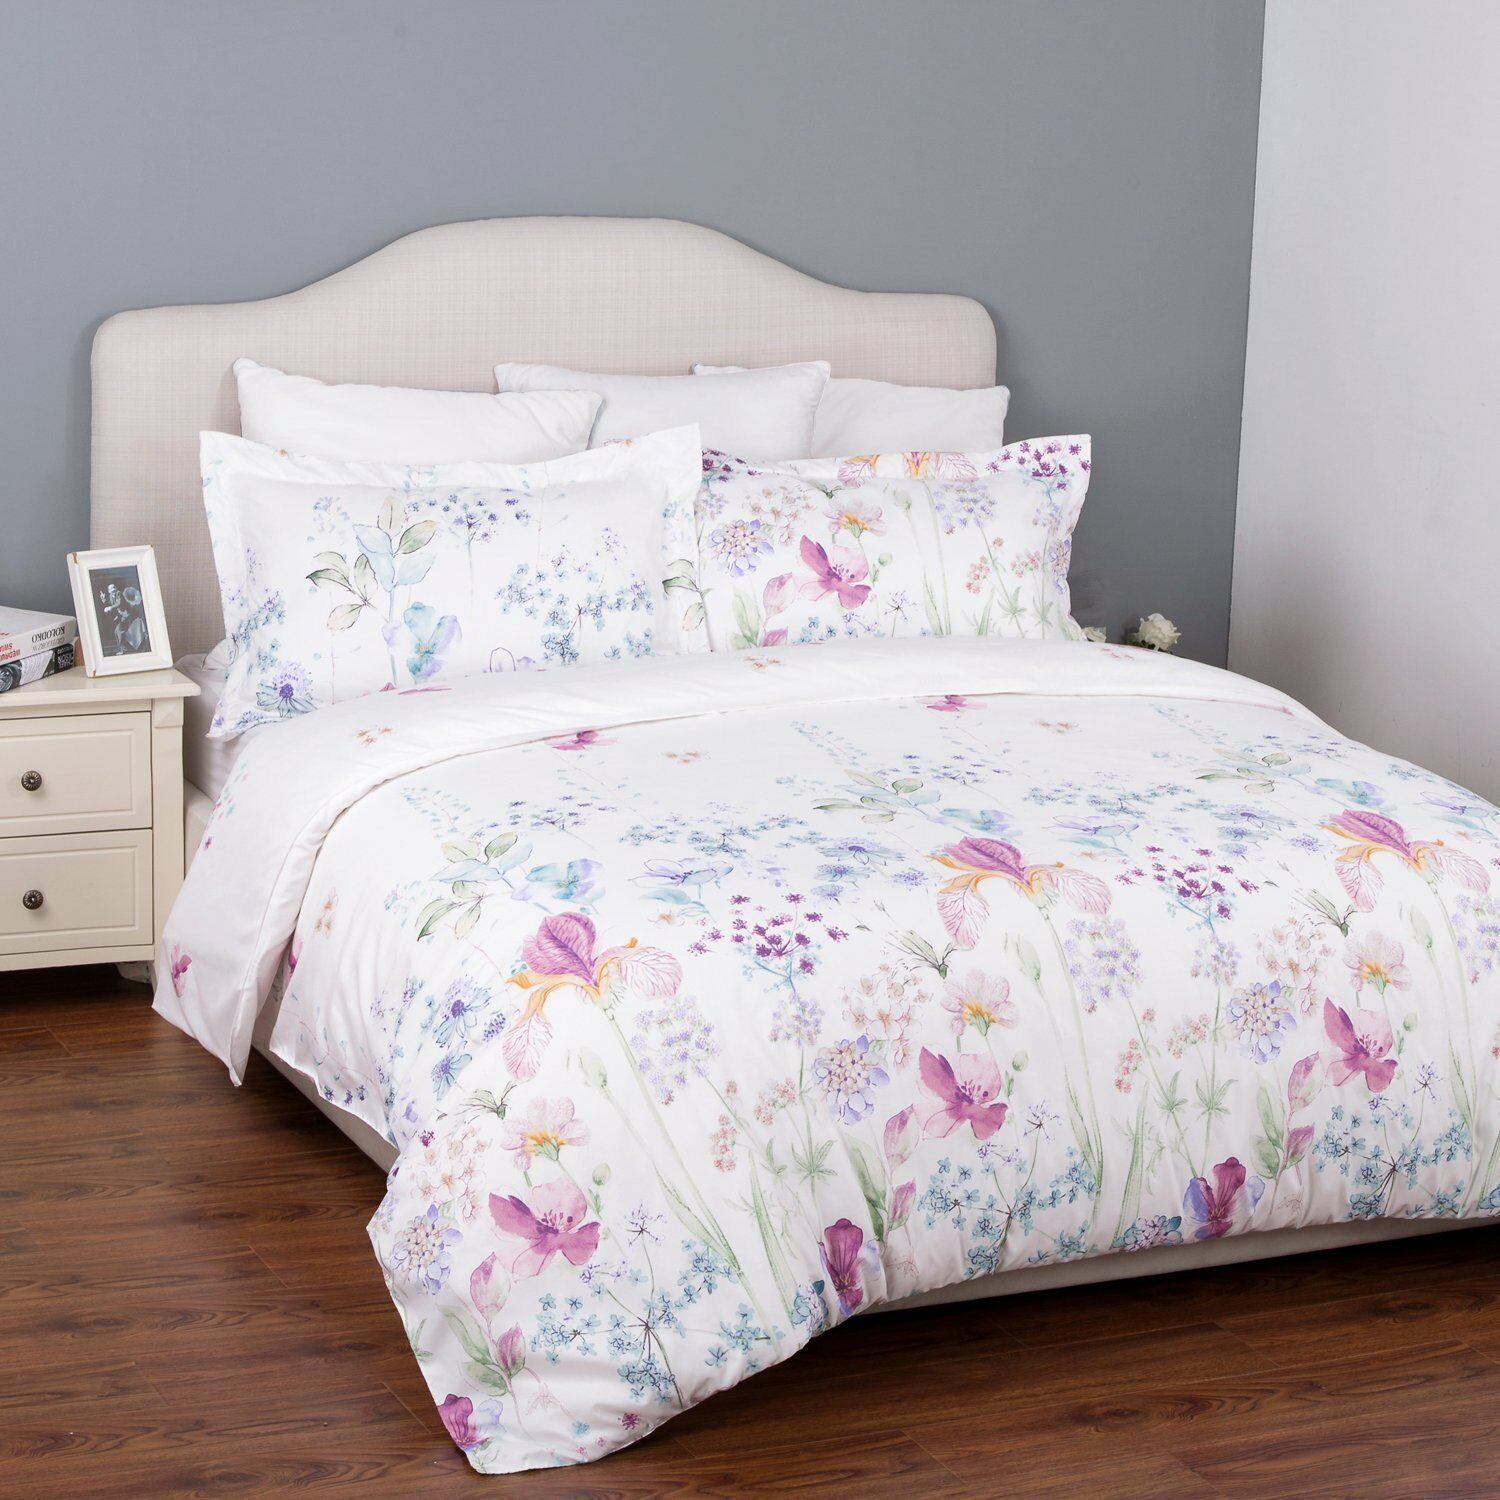 Luxury Floral Print King Size Bed Bedding Set Duvet Quilt Cover With Pillowcases